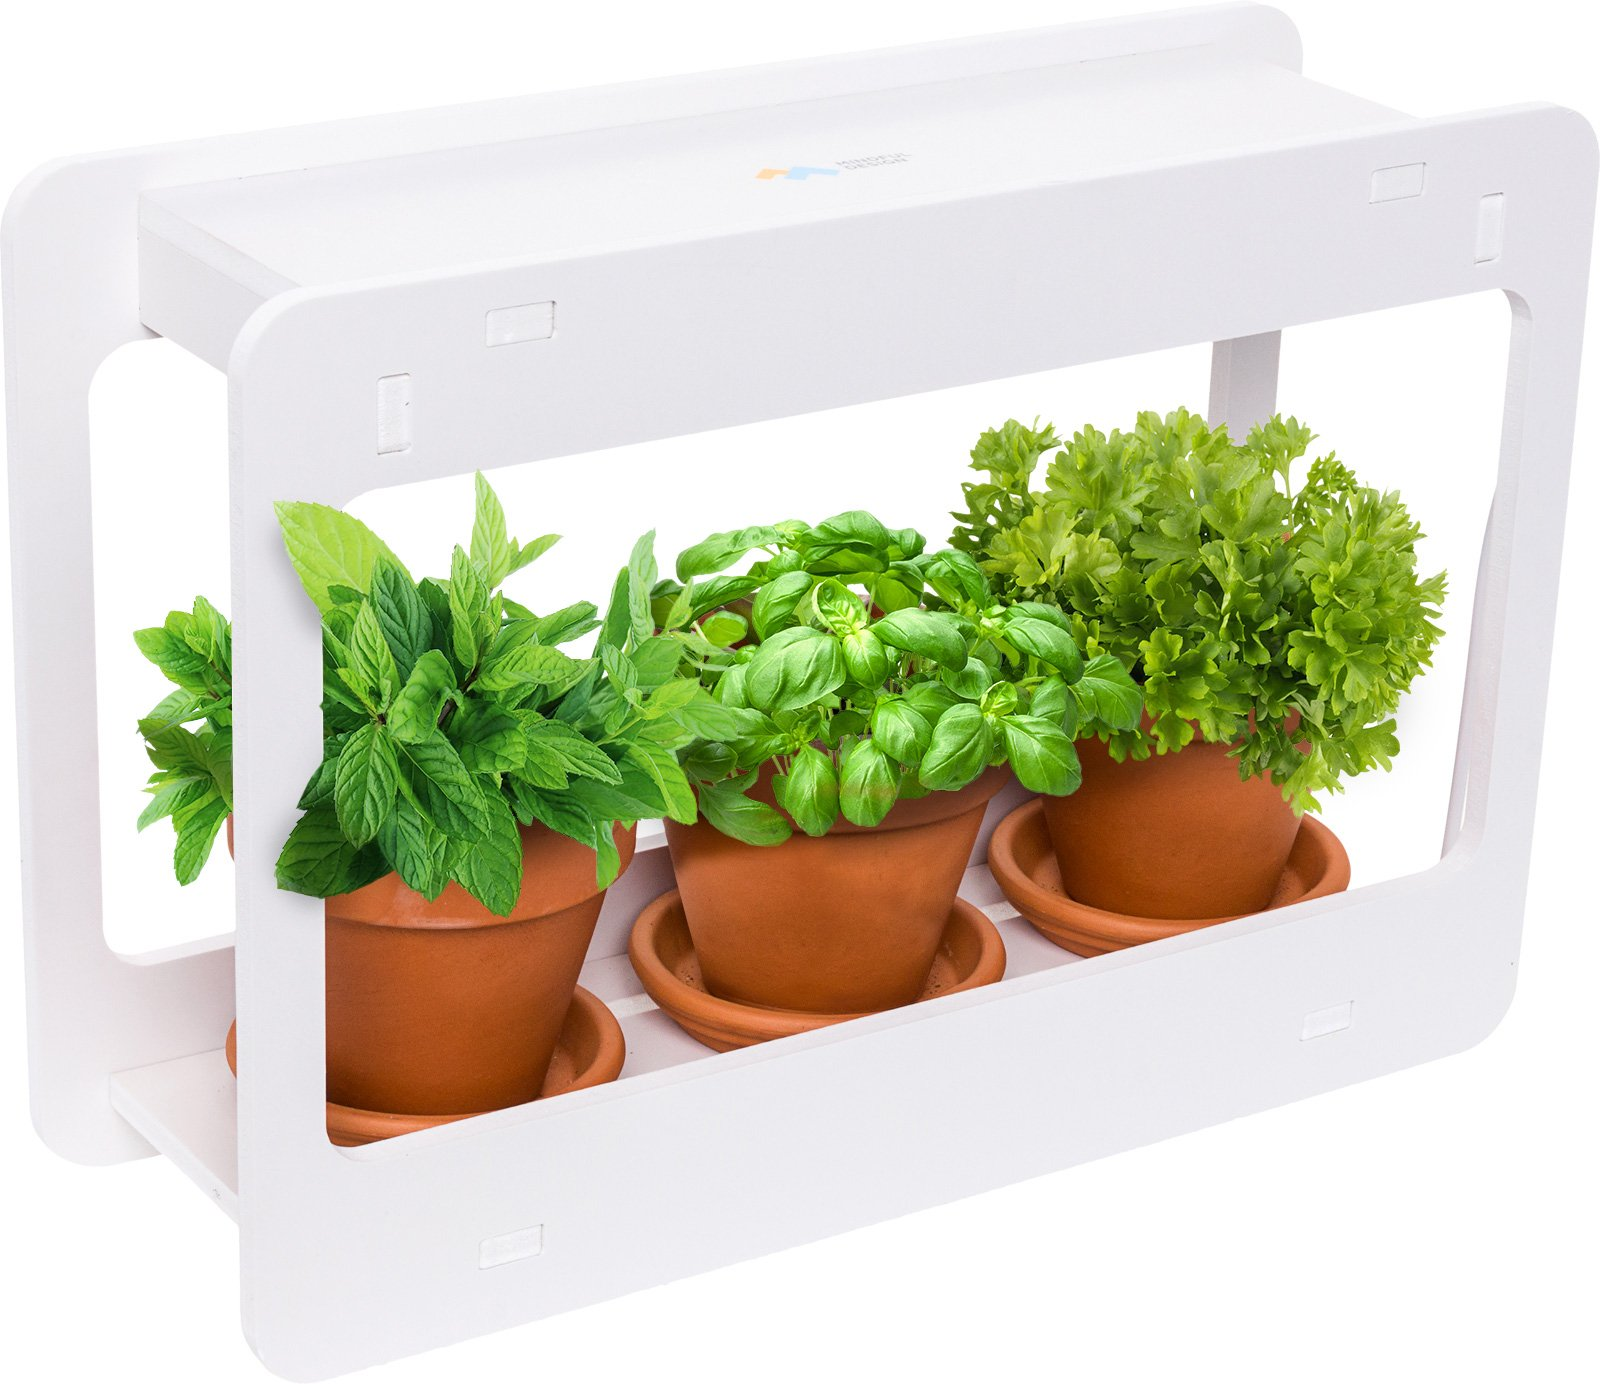 Mindful Design LED Indoor Herb Garden - at Home Mini Window Planter Kit for Herbs, Succulents, and Vegetables (White)